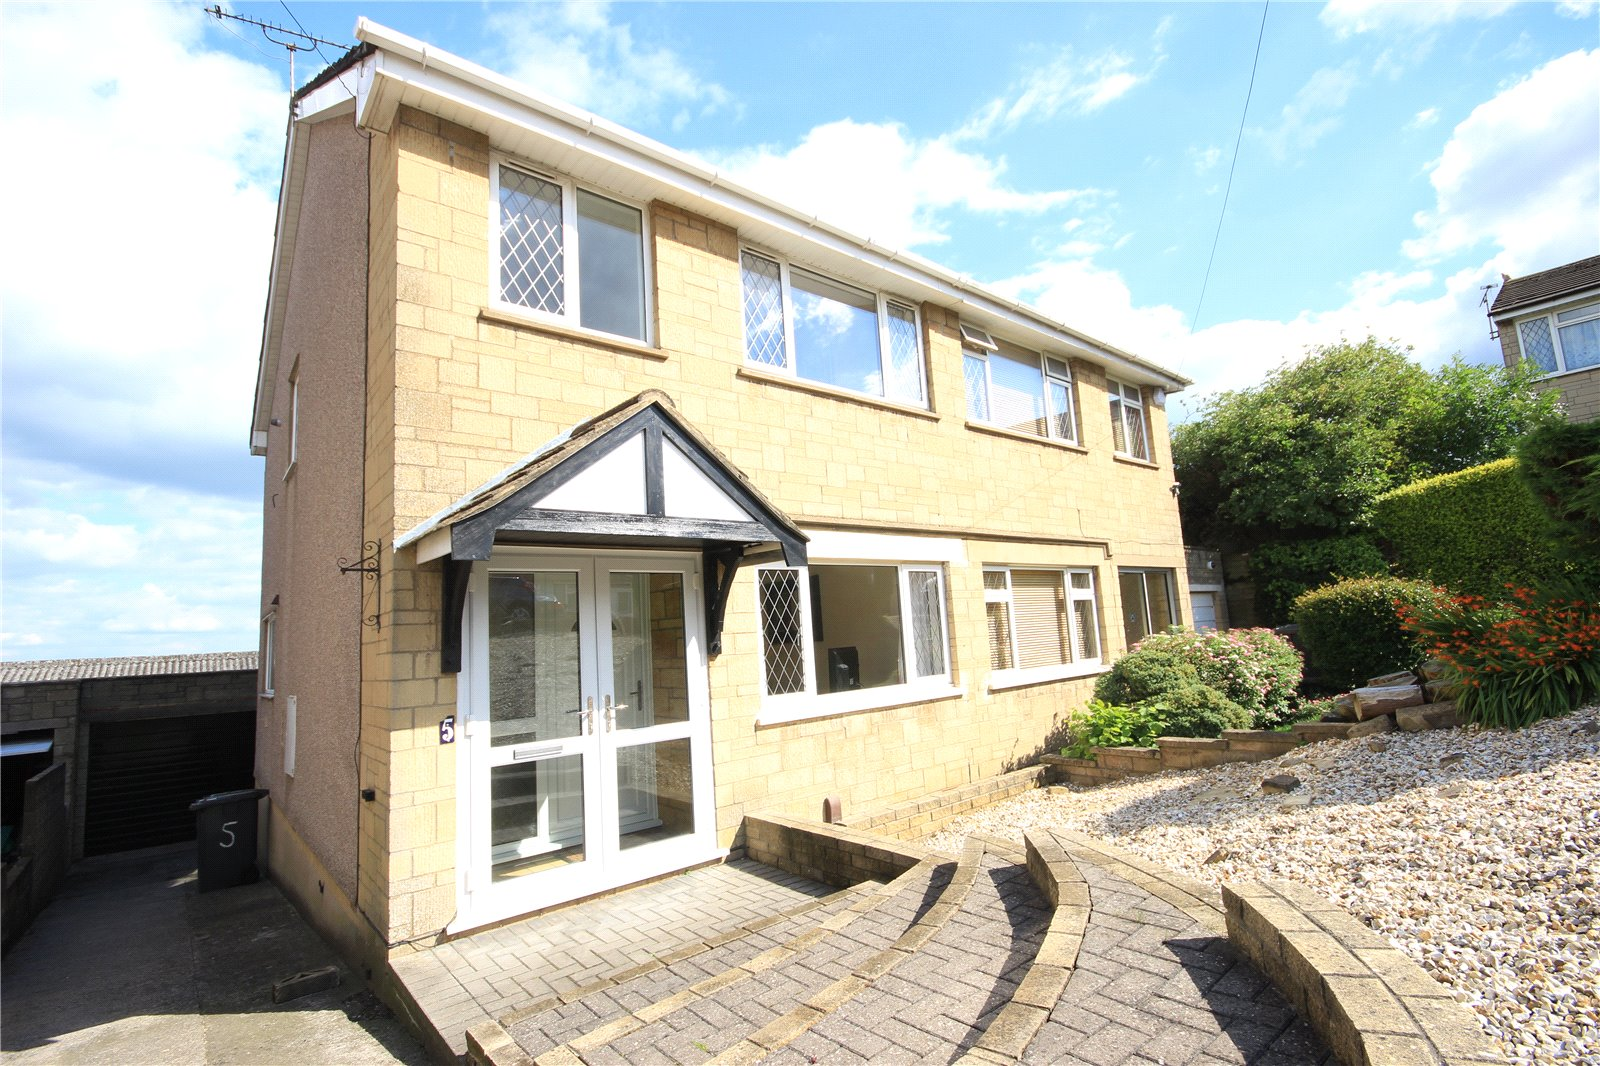 3 Bedrooms Semi Detached House for sale in Dyrham Close Kingswood Bristol BS15